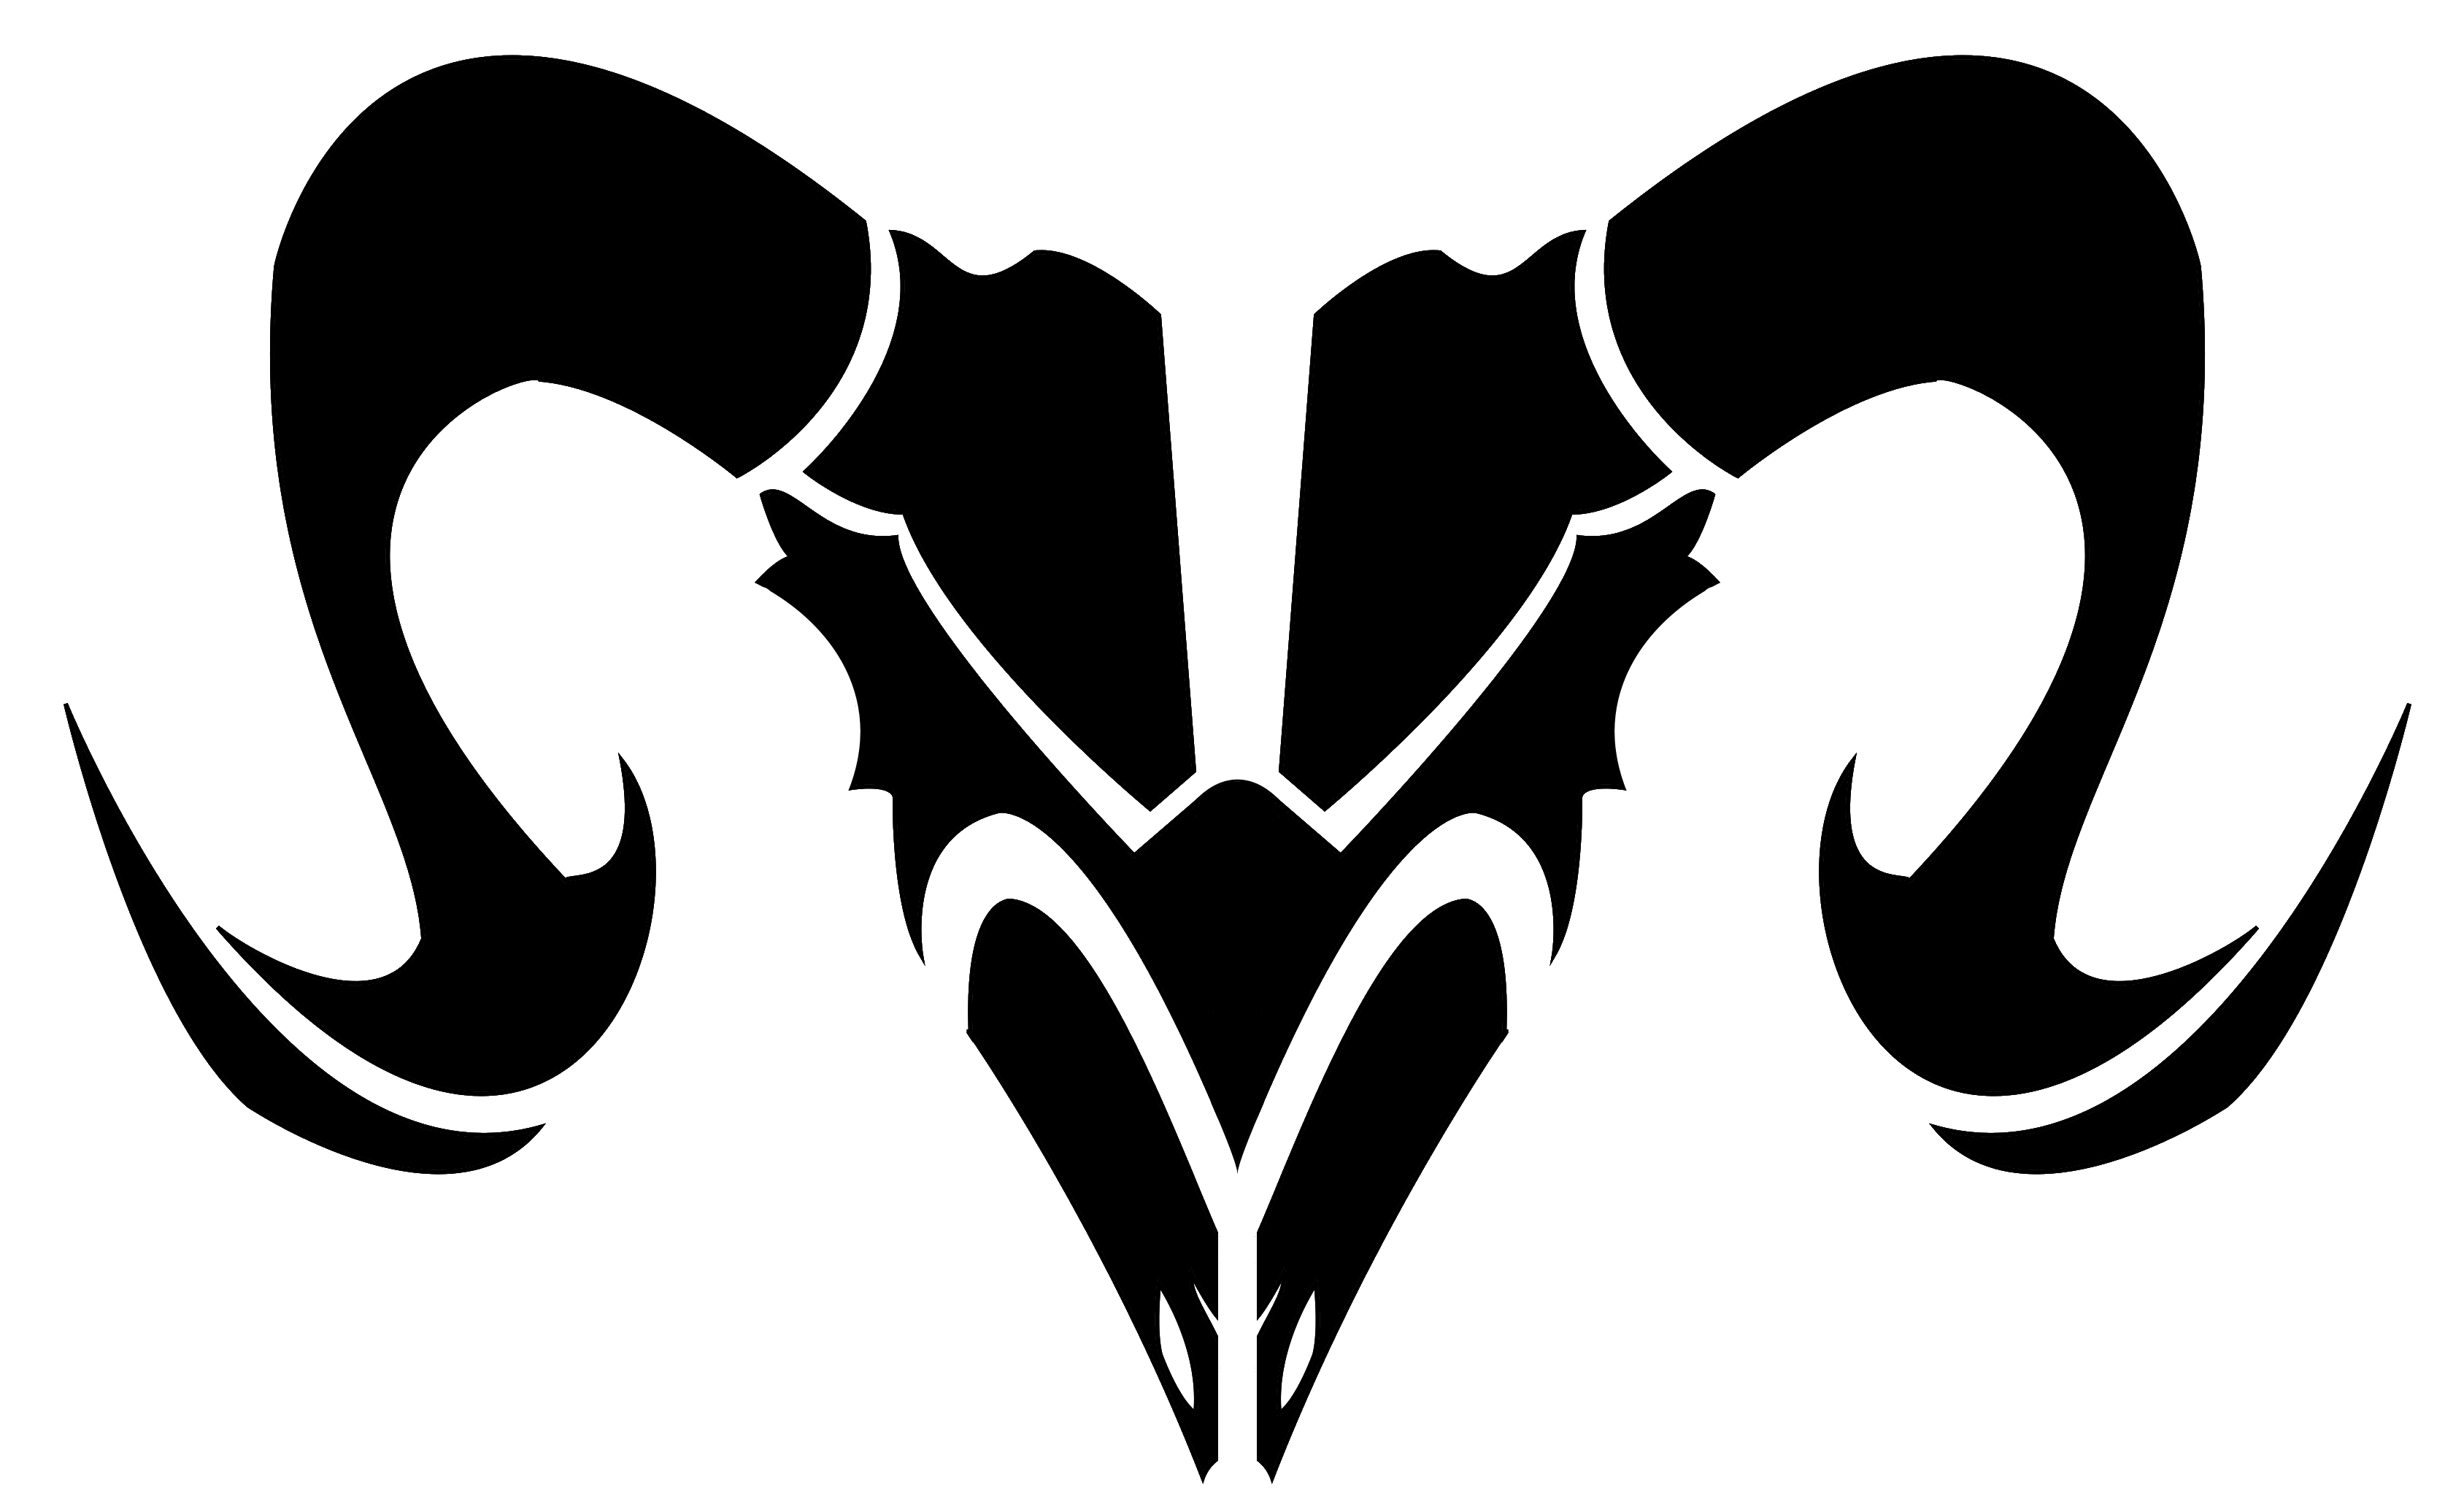 Zodiac Signs Aries Black and White.